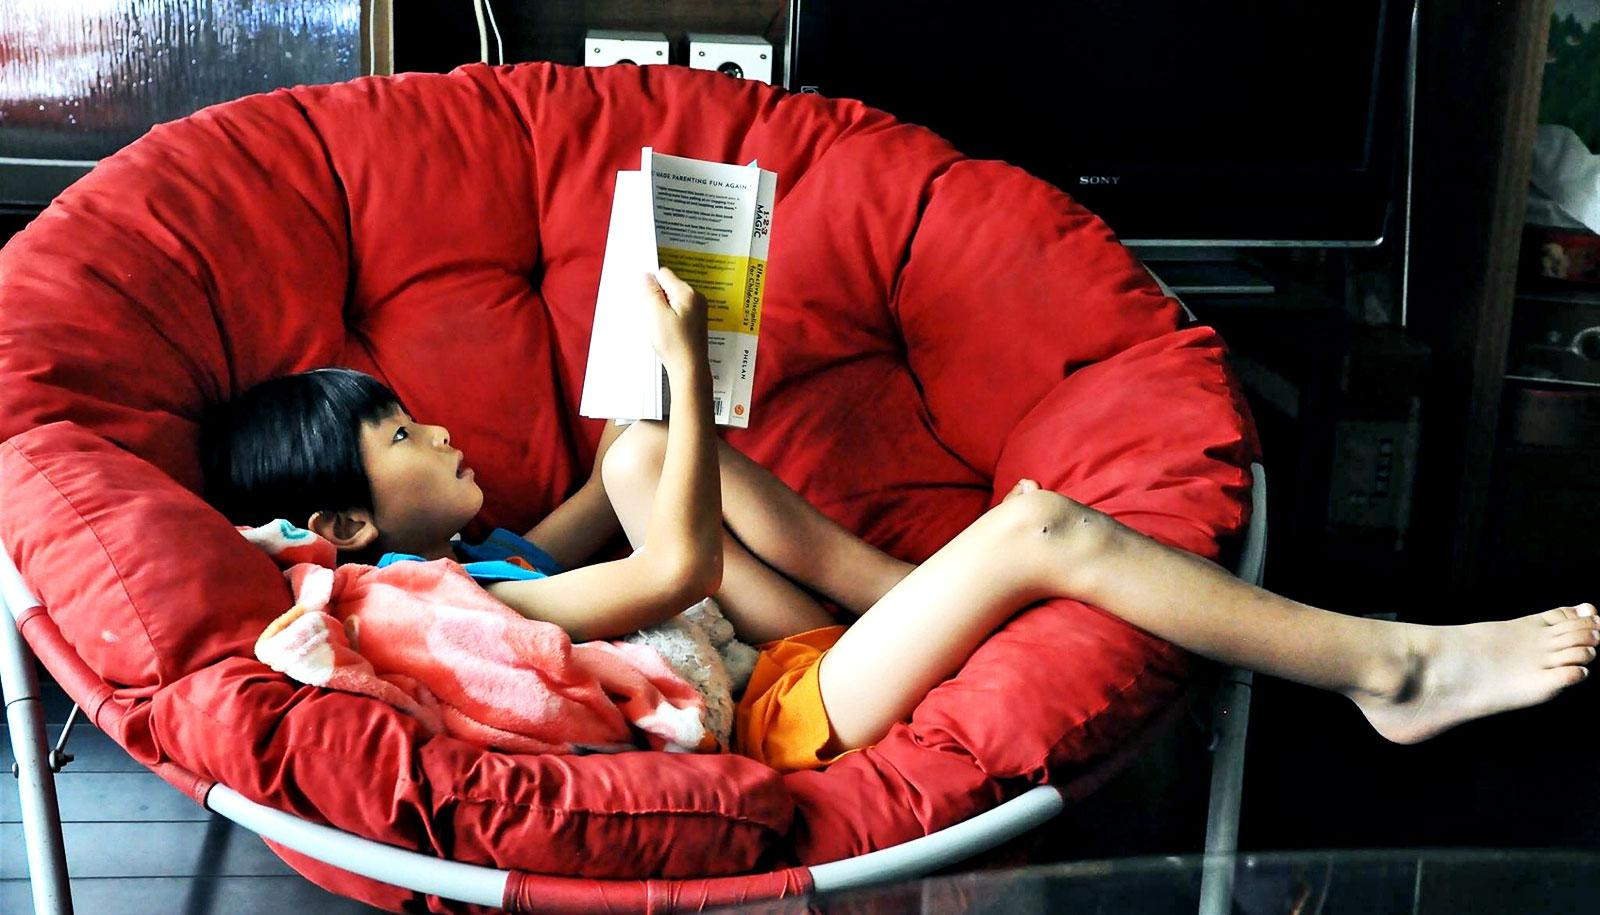 kid reading in red chair (dyslexia concept)